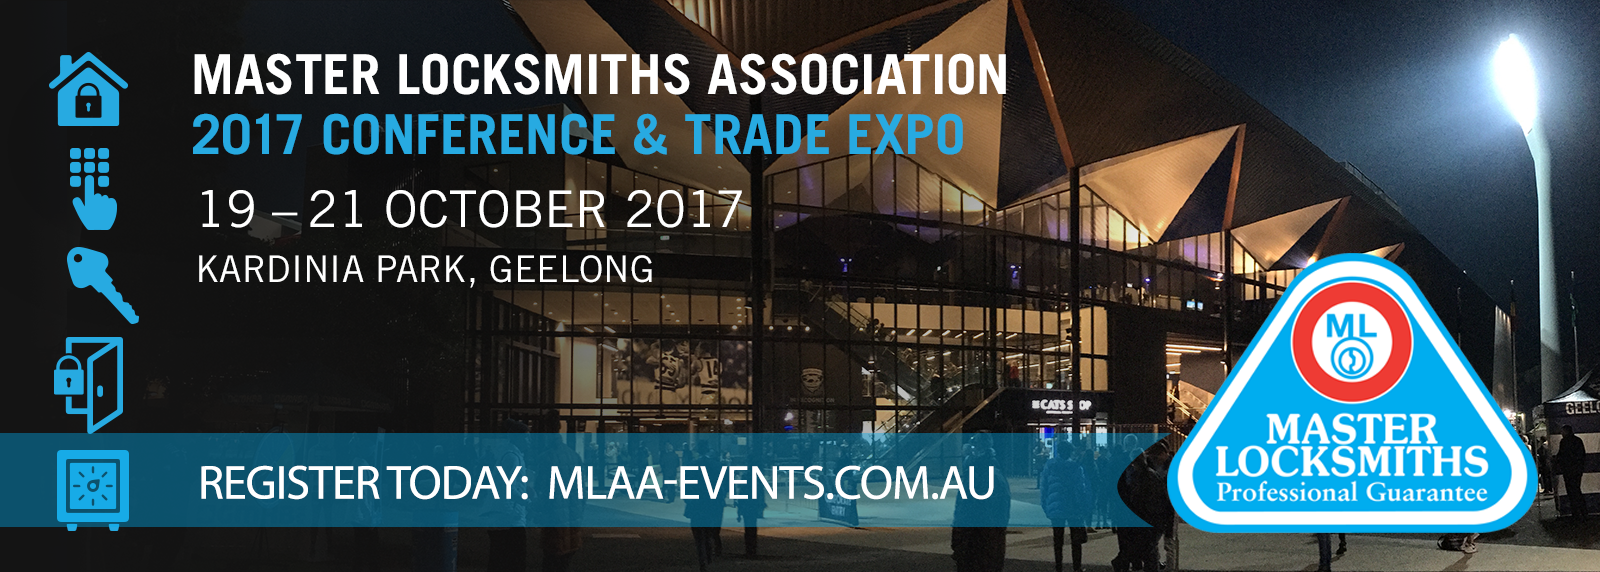 MasterLocksmiths2017 Registration Banner - Geelong Register.png (1.36 MB)